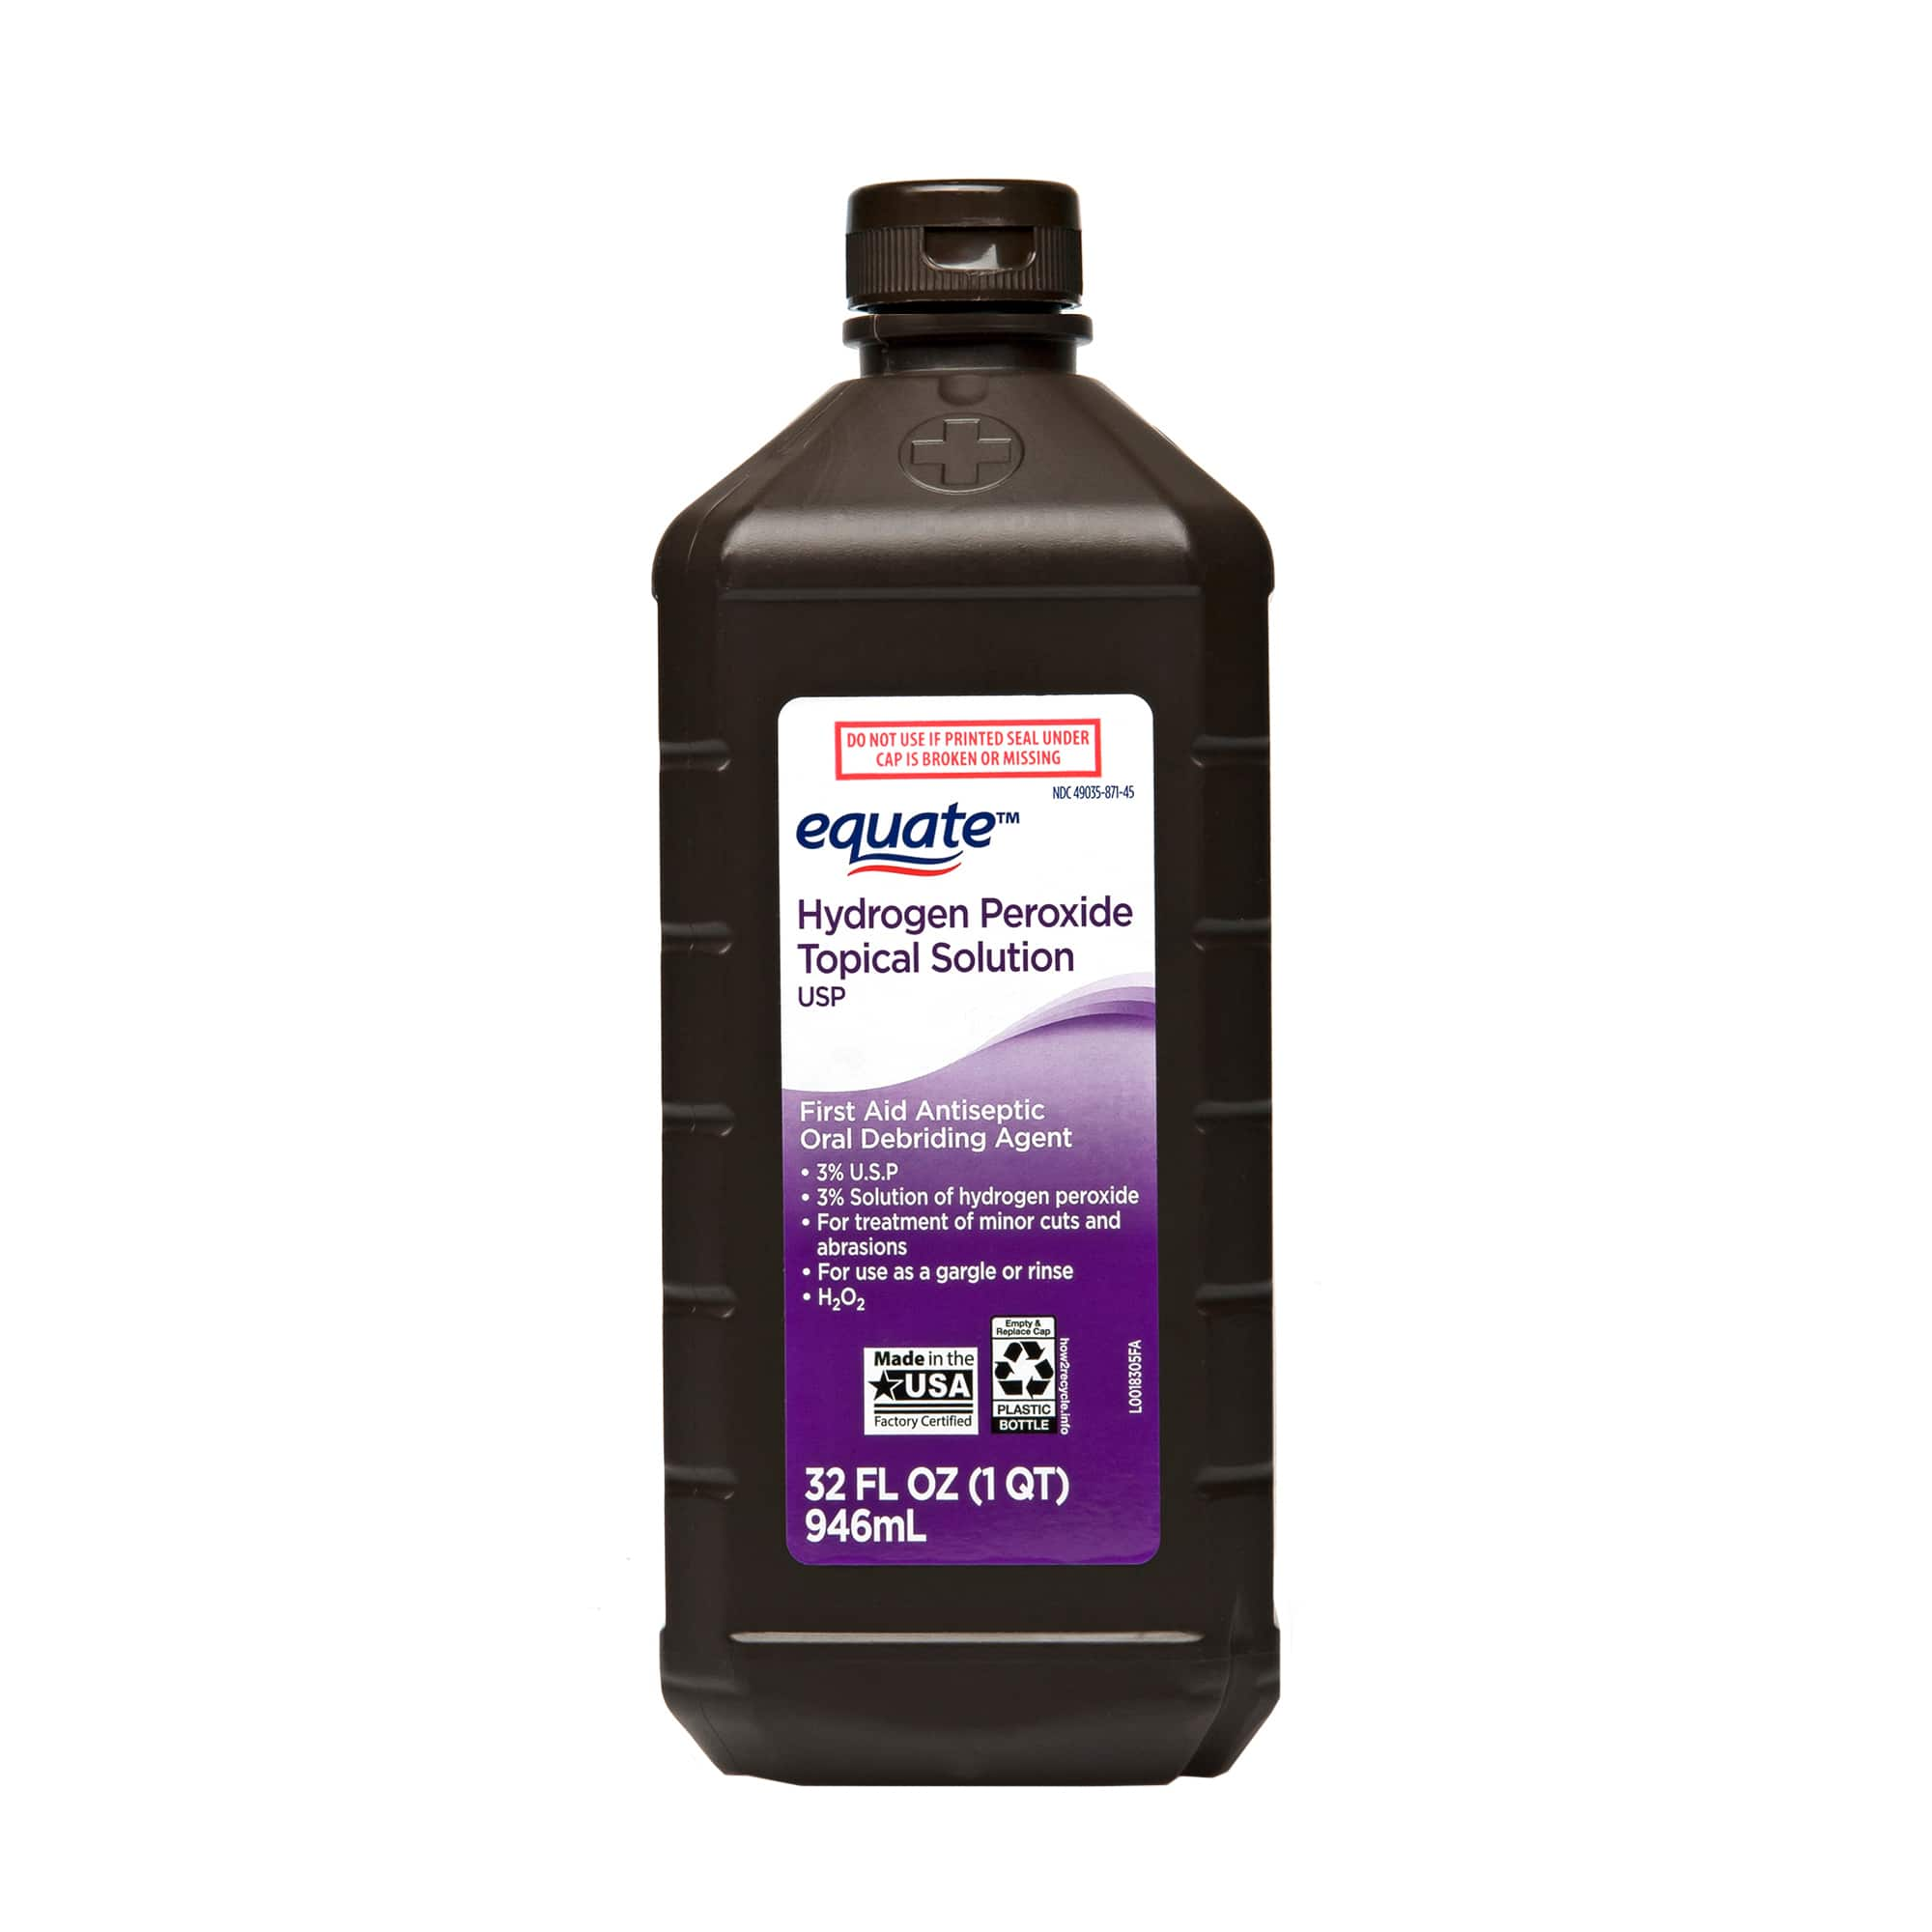 Hydrogen Peroxide at Walmart (4 Pack) Hydrogen Peroxide, 3%, 32-oz. $3.52 OR $3.69. Single or 2Pack also available